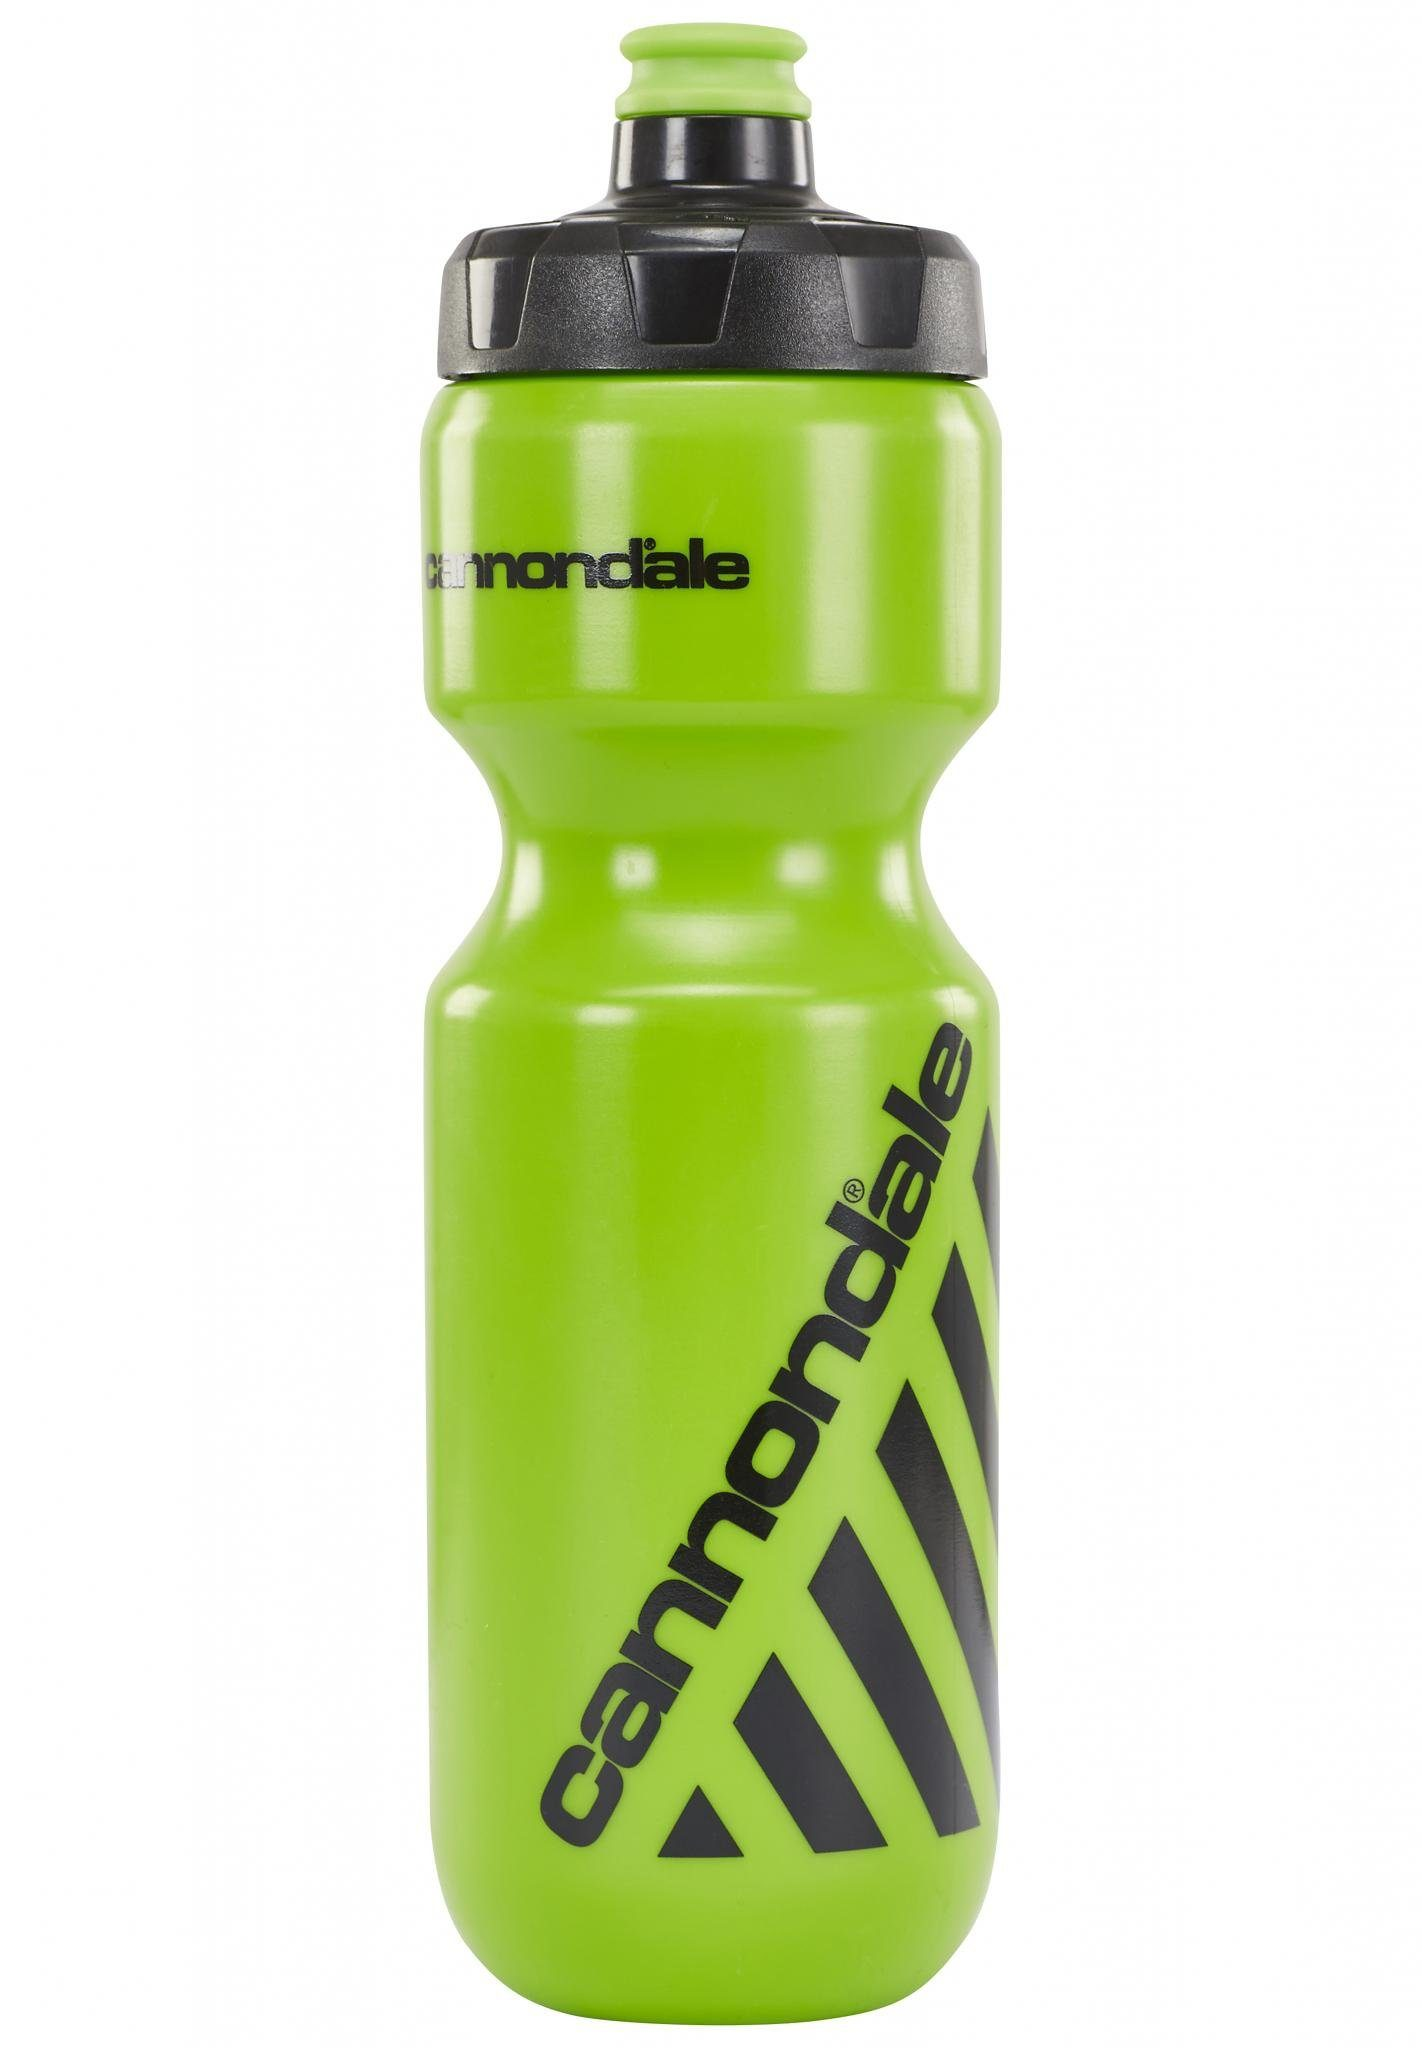 Cannondale Trinkflasche »Retro Bottle 680 ml«